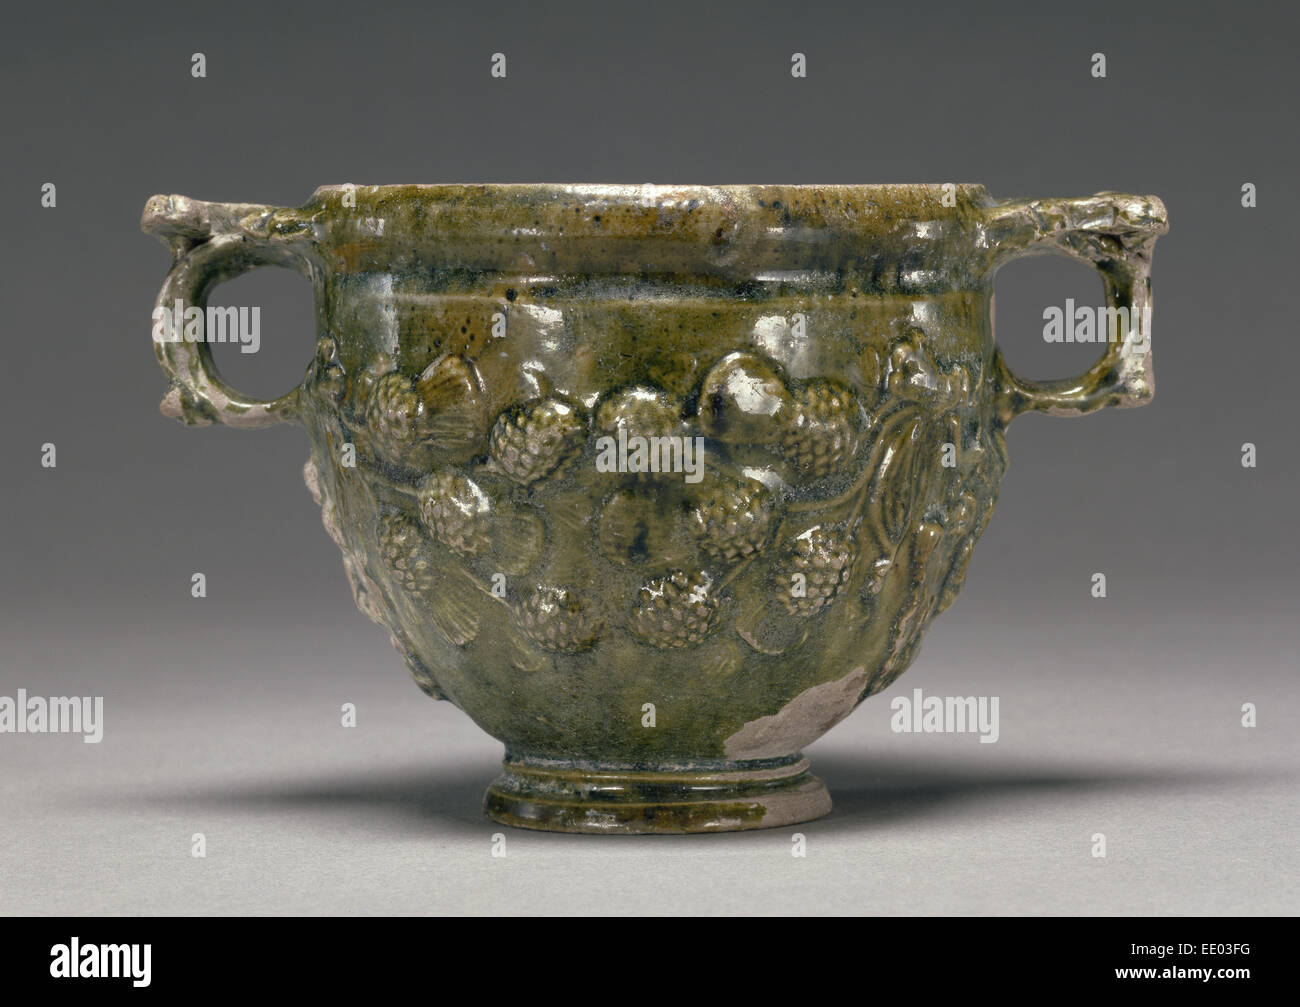 Lead-Glazed Skyphos; Unknown; Asia Minor; 50 B.C. - A.D. 50; Terracotta - Stock Image